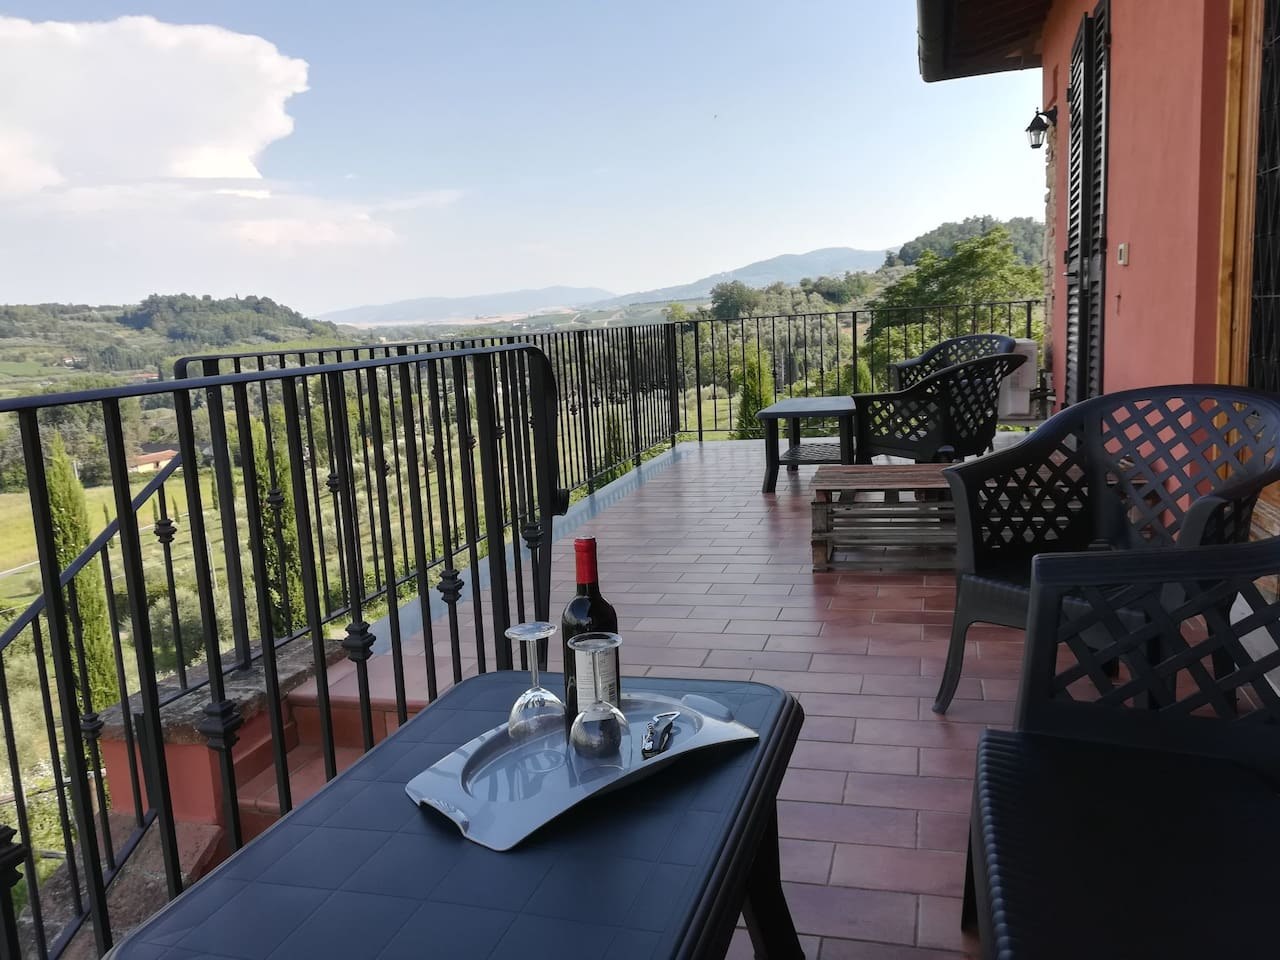 Enjoy a glass of wine admiring our Tuscan landscape